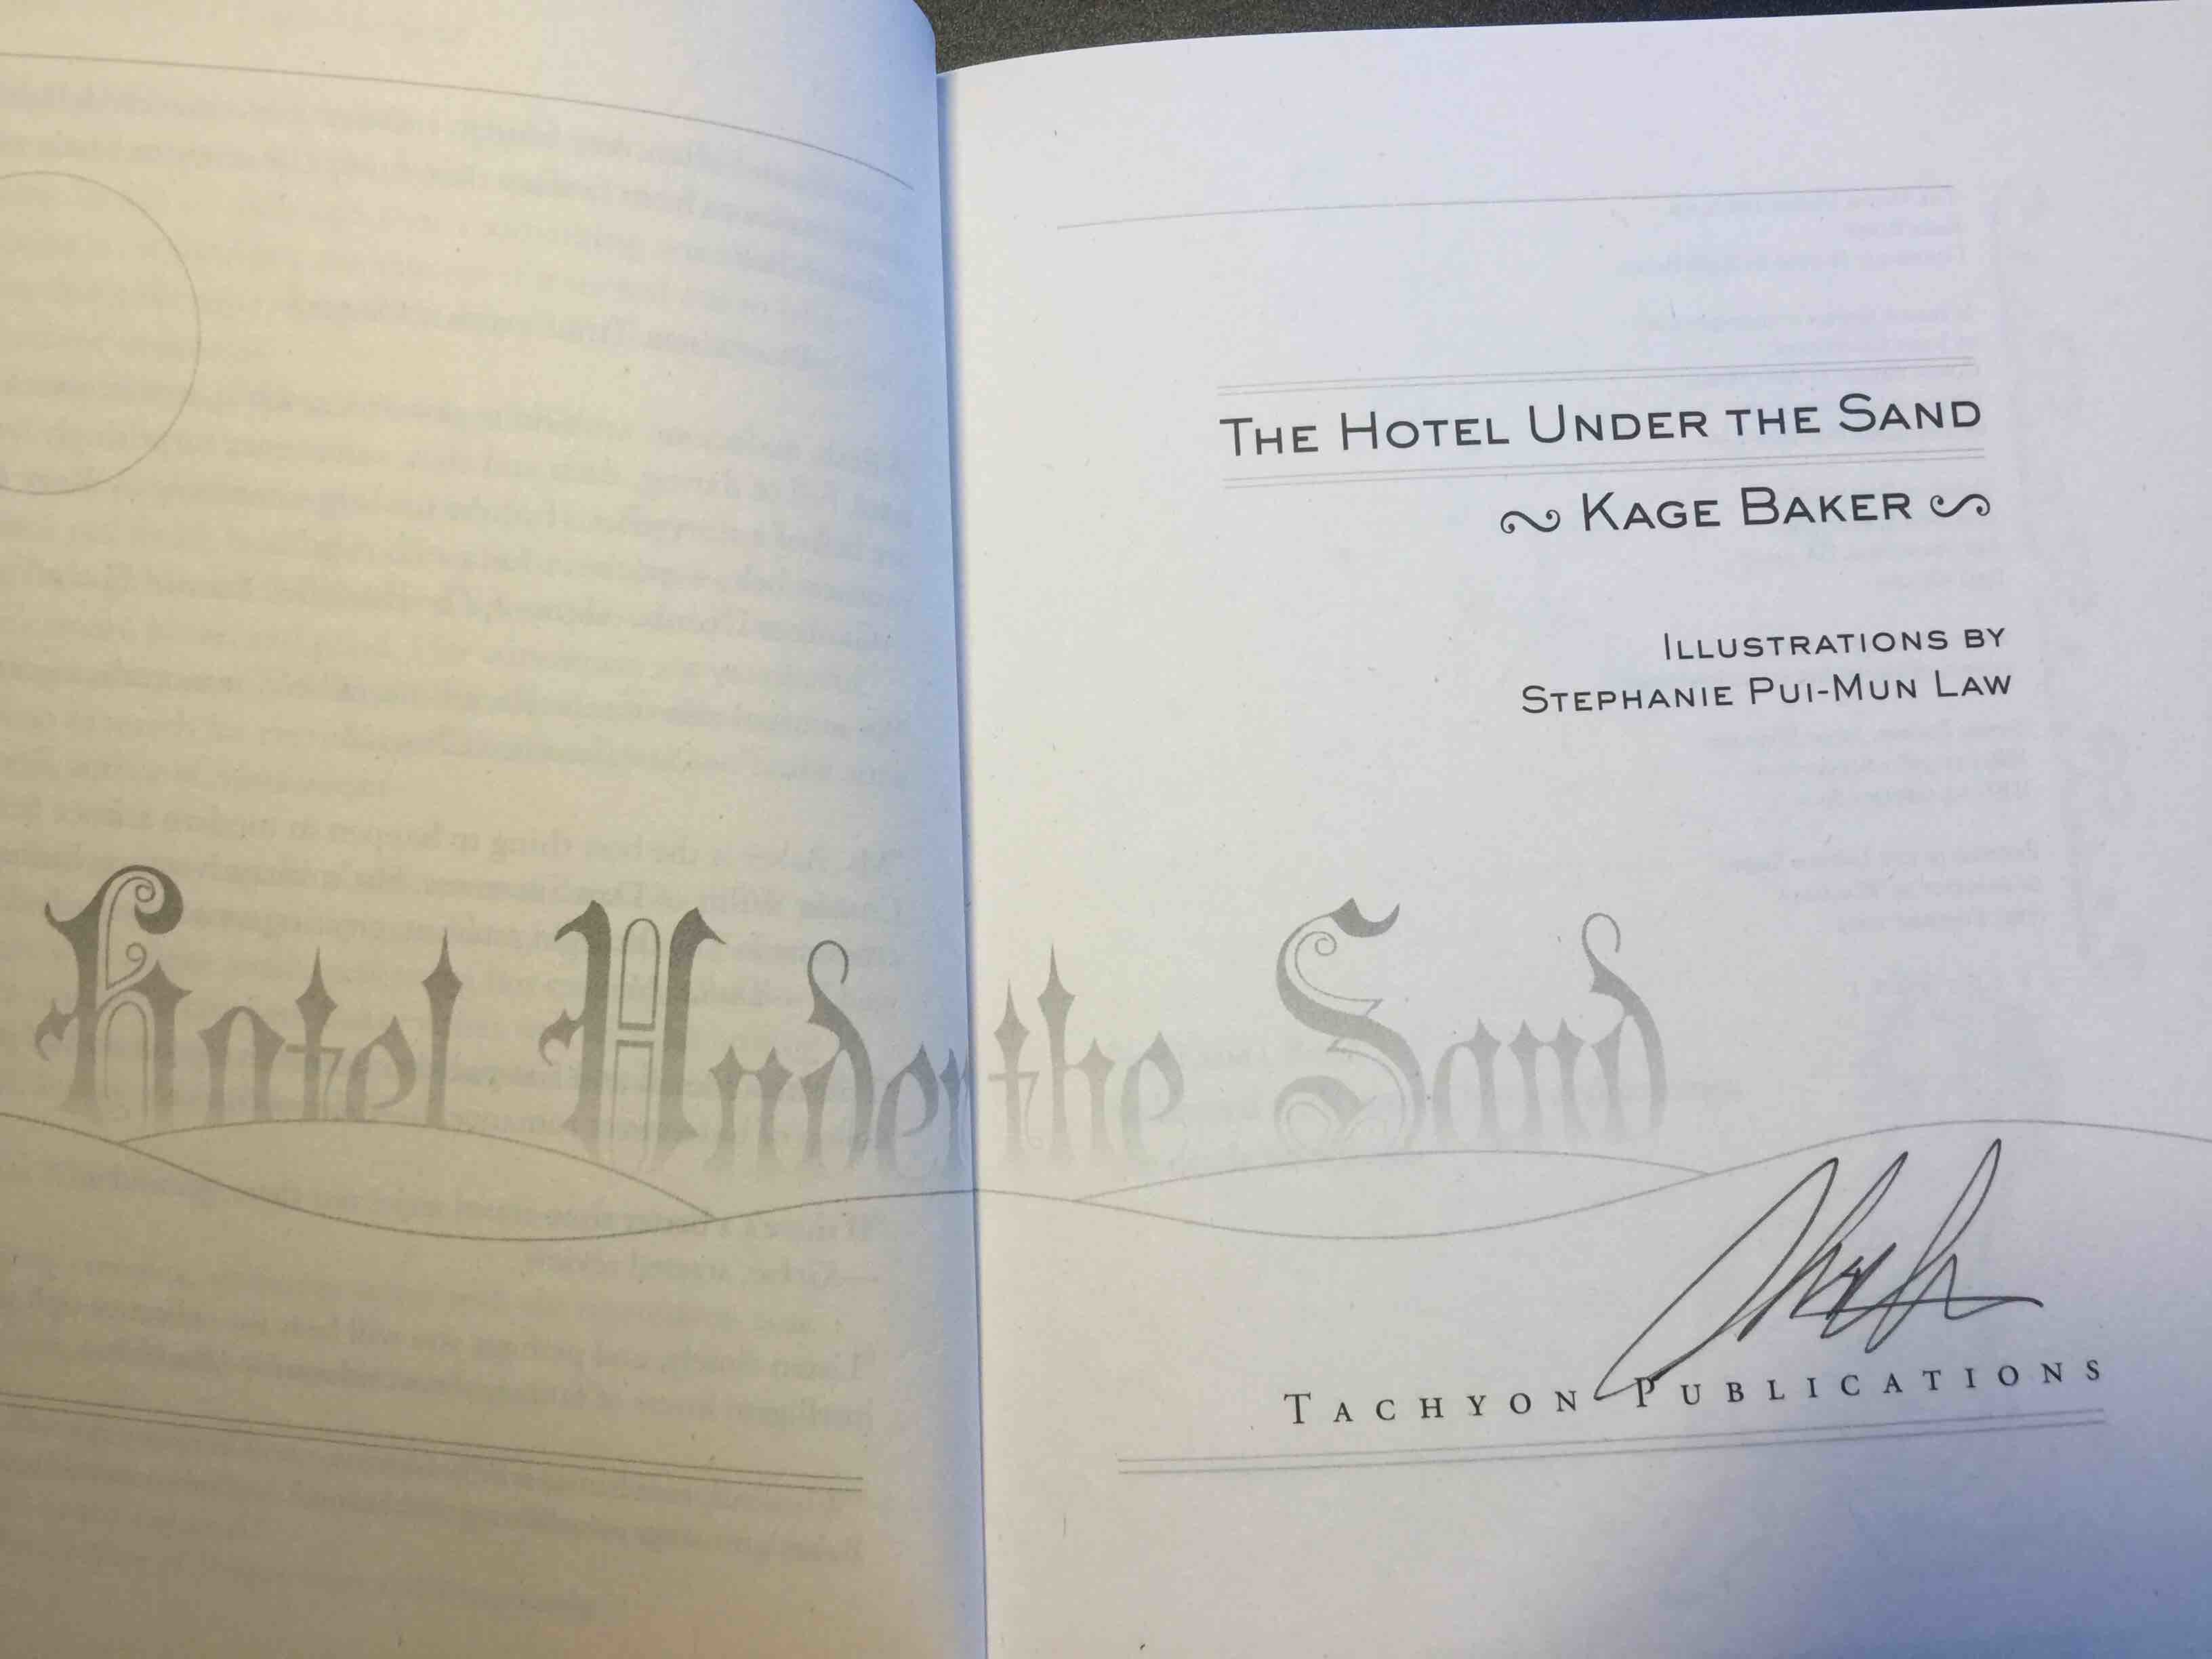 Book cover picture of Baker, Kage. THE HOTEL UNDER THE SAND. San Francisco: Tachyon Publications, (2009.)